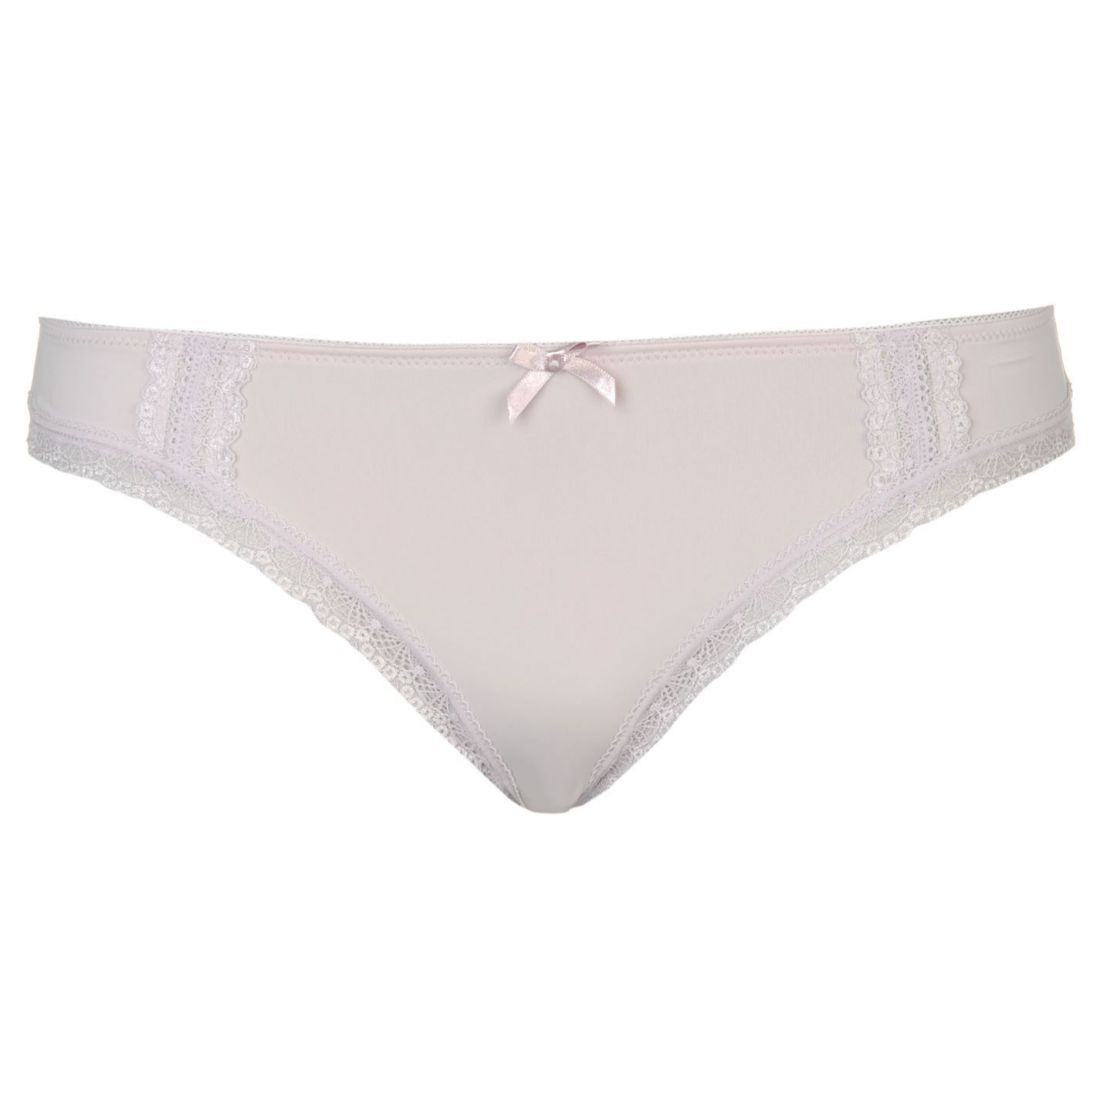 Miso Womens Micro Lace Briefs Bow Detail Stretchy Underwear Accessories 5051bf3cf